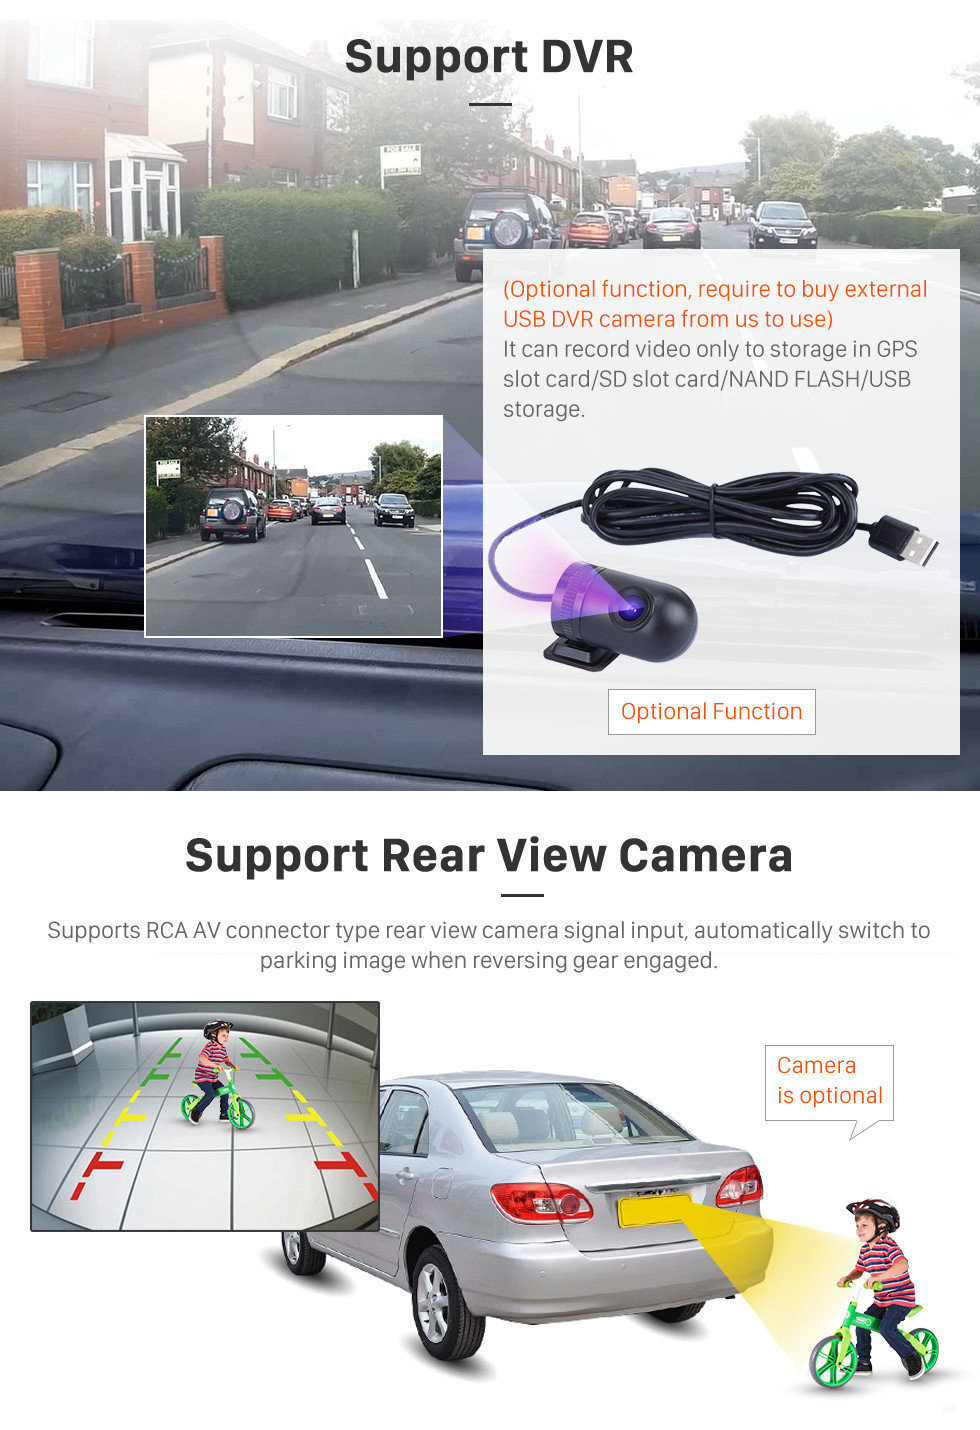 Seicane Android 10.0 9 inch HD 1024*600 Touch Screen Car Radio For 2010-2015 KIA Sportage GPS Navigation Bluetooth WIFI USB Mirror Link Support DVR OBD2 4G WiFi Steering Wheel Control Backup Camera